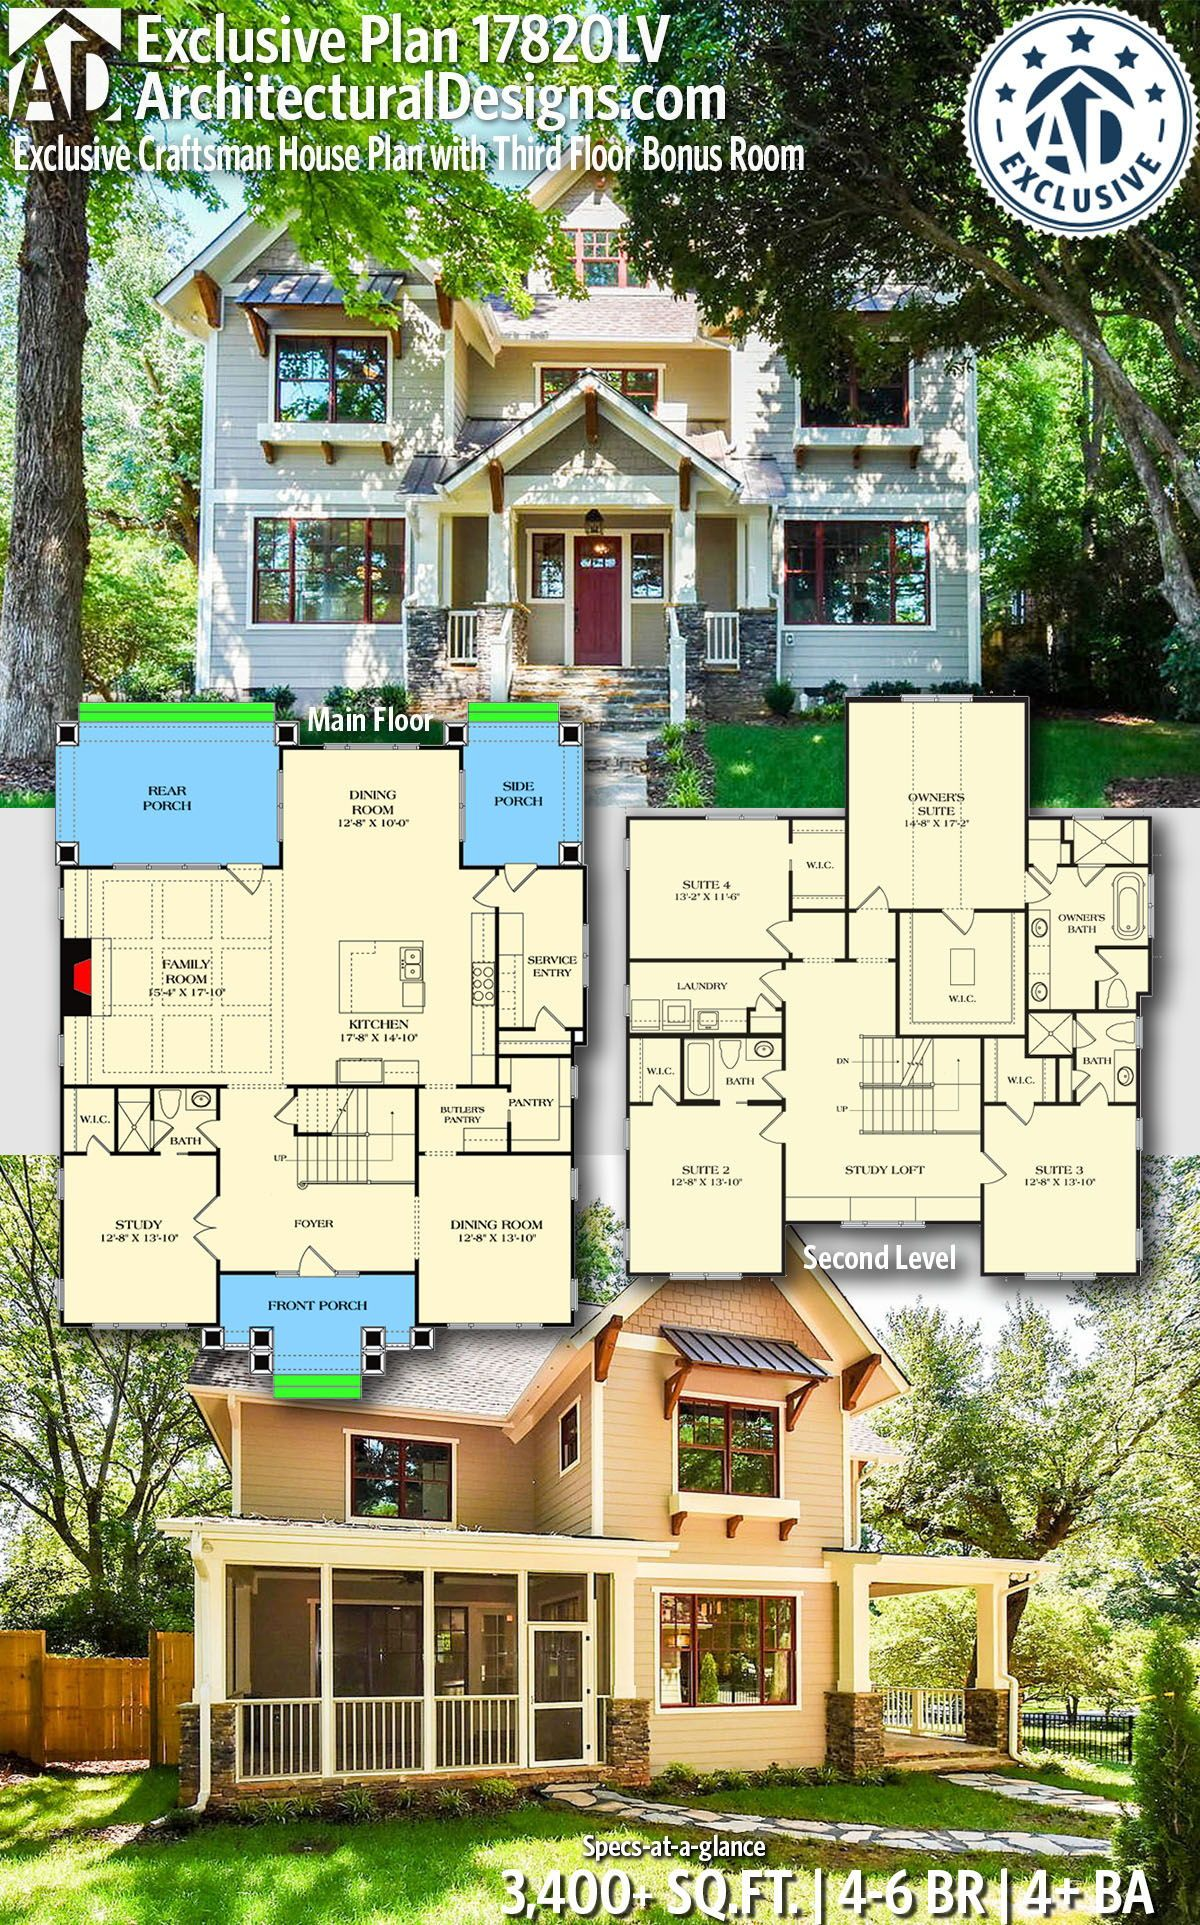 Plan 17820lv Exclusive Craftsman House Plan With Third Floor Bonus Room In 2020 House Plans Craftsman House Plan Craftsman House